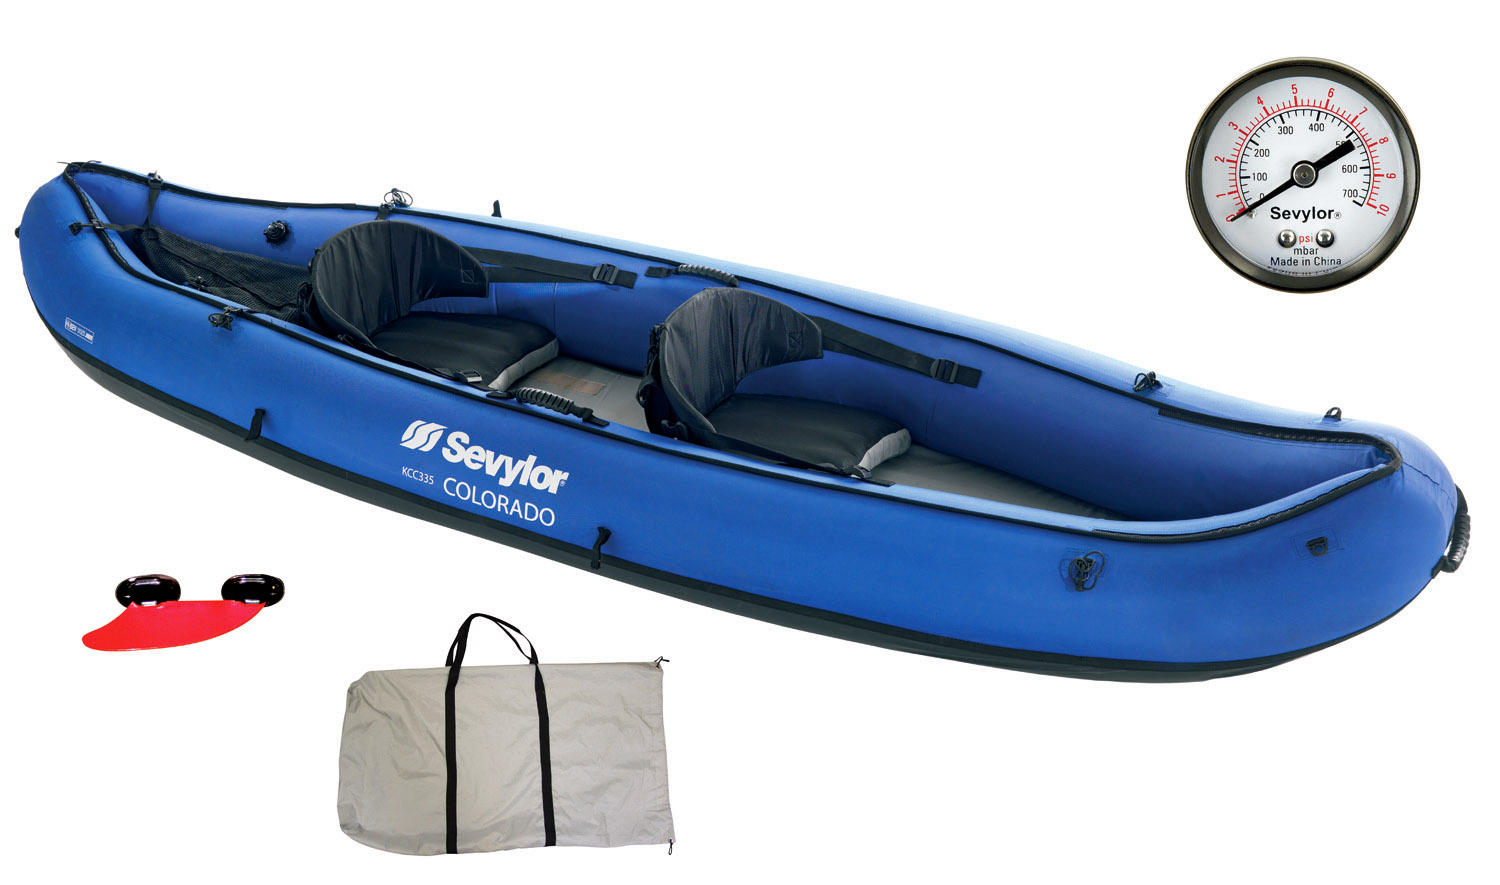 sevylor colorado 2 person inflatable kayak wild water. Black Bedroom Furniture Sets. Home Design Ideas